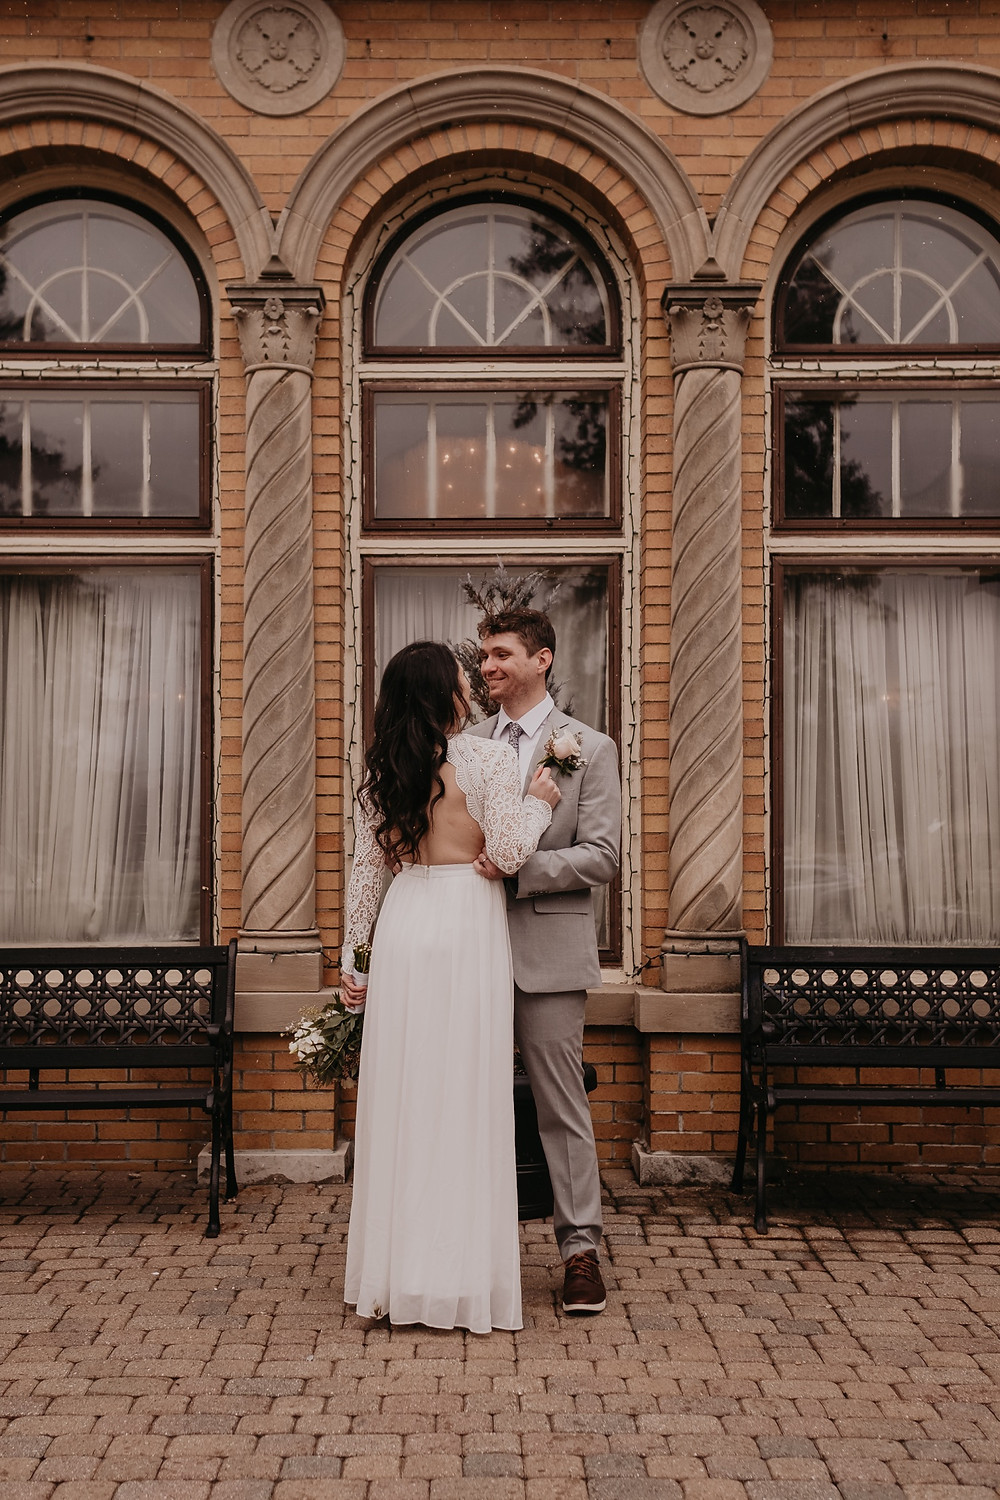 Detroit bride and groom outside Victoria Wedding Chapel in Waterford, Michigan. Photographed by Nicole Leanne Photography